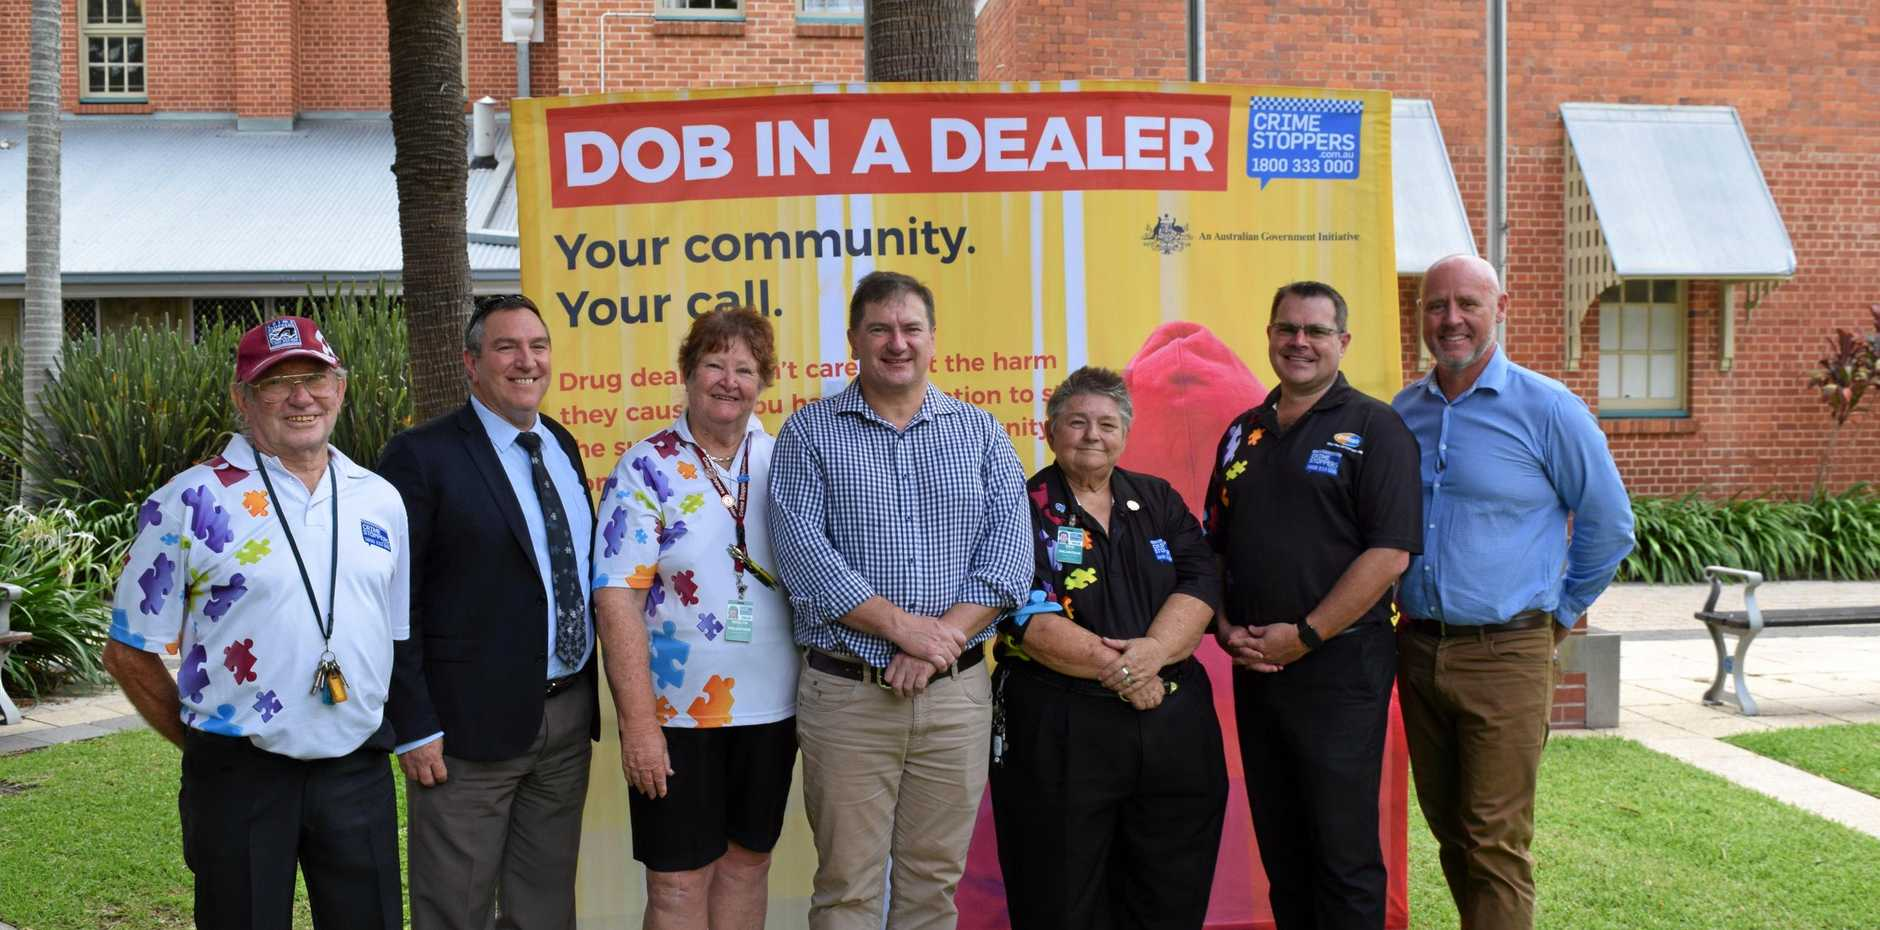 STOP THE SUPPLY: Crime Stoppers volunteer Perry Perrement, Wide Bay Burnett district detective Inspector Gary Pettiford, CS volunteer Roz Kemp, Federal Member for Wide Bay Llew O'Brien, CS volunteer Kris McHugh, CS general manager Johnathon Cowley and Cr Darren Everard at the launch of Dob in a Dealer on the Town Hall green in Maryborough.